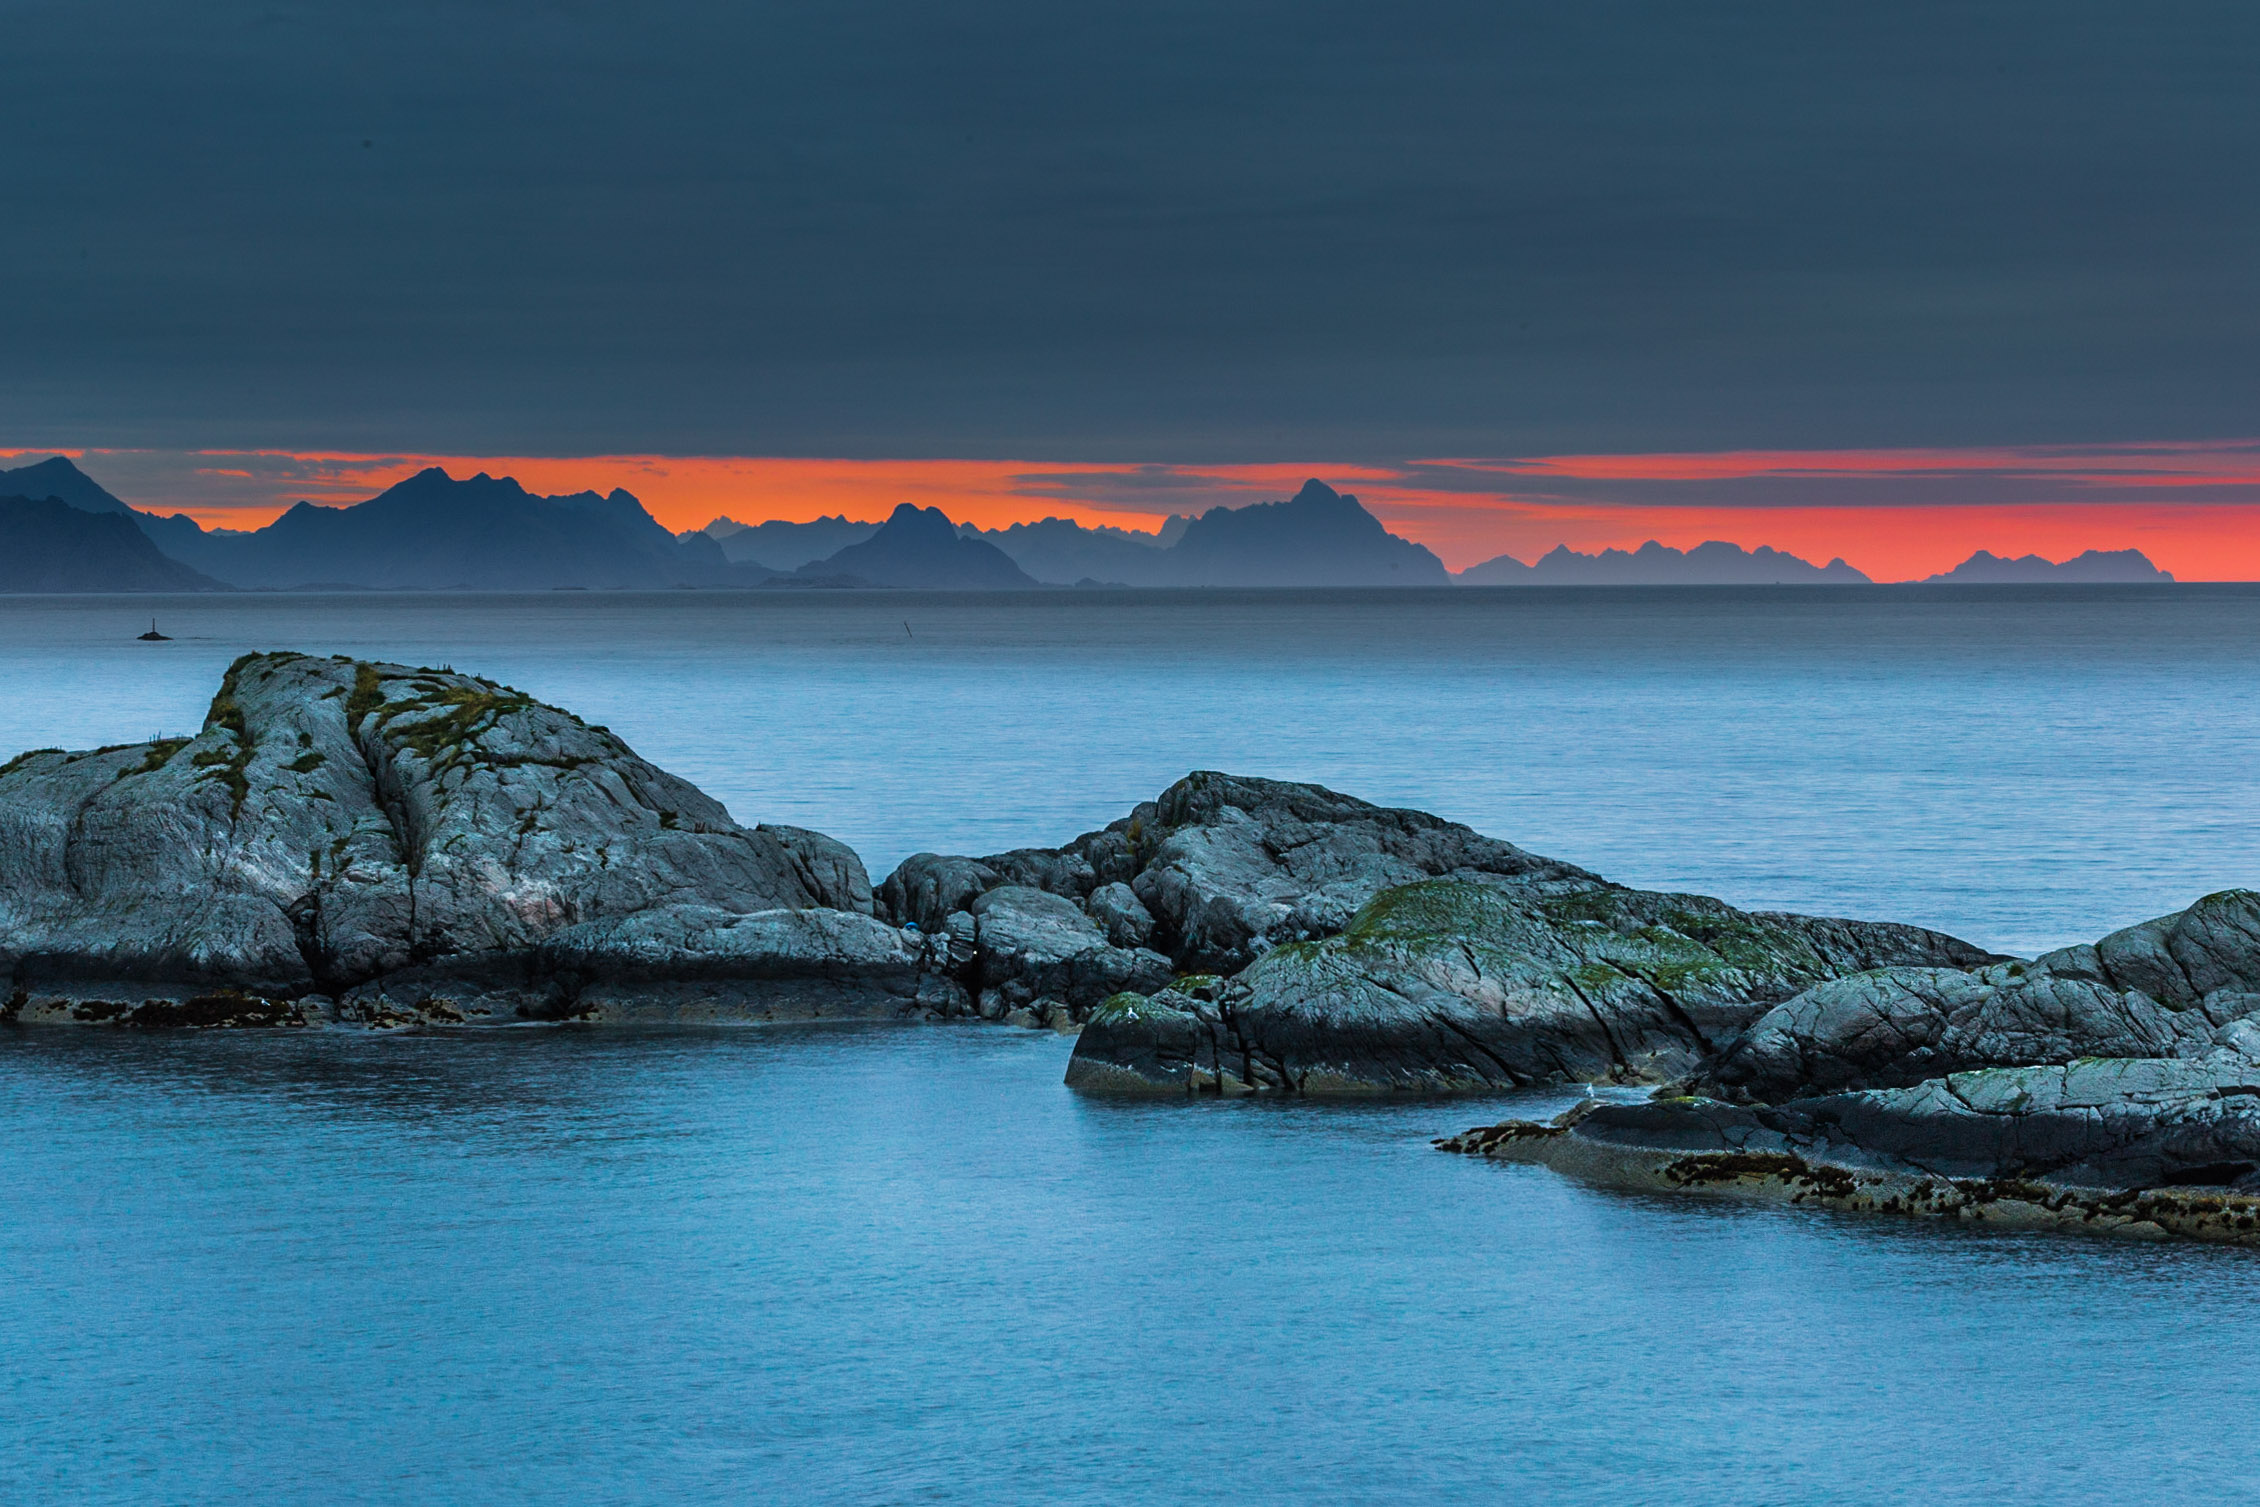 sunrise from Hamnøy